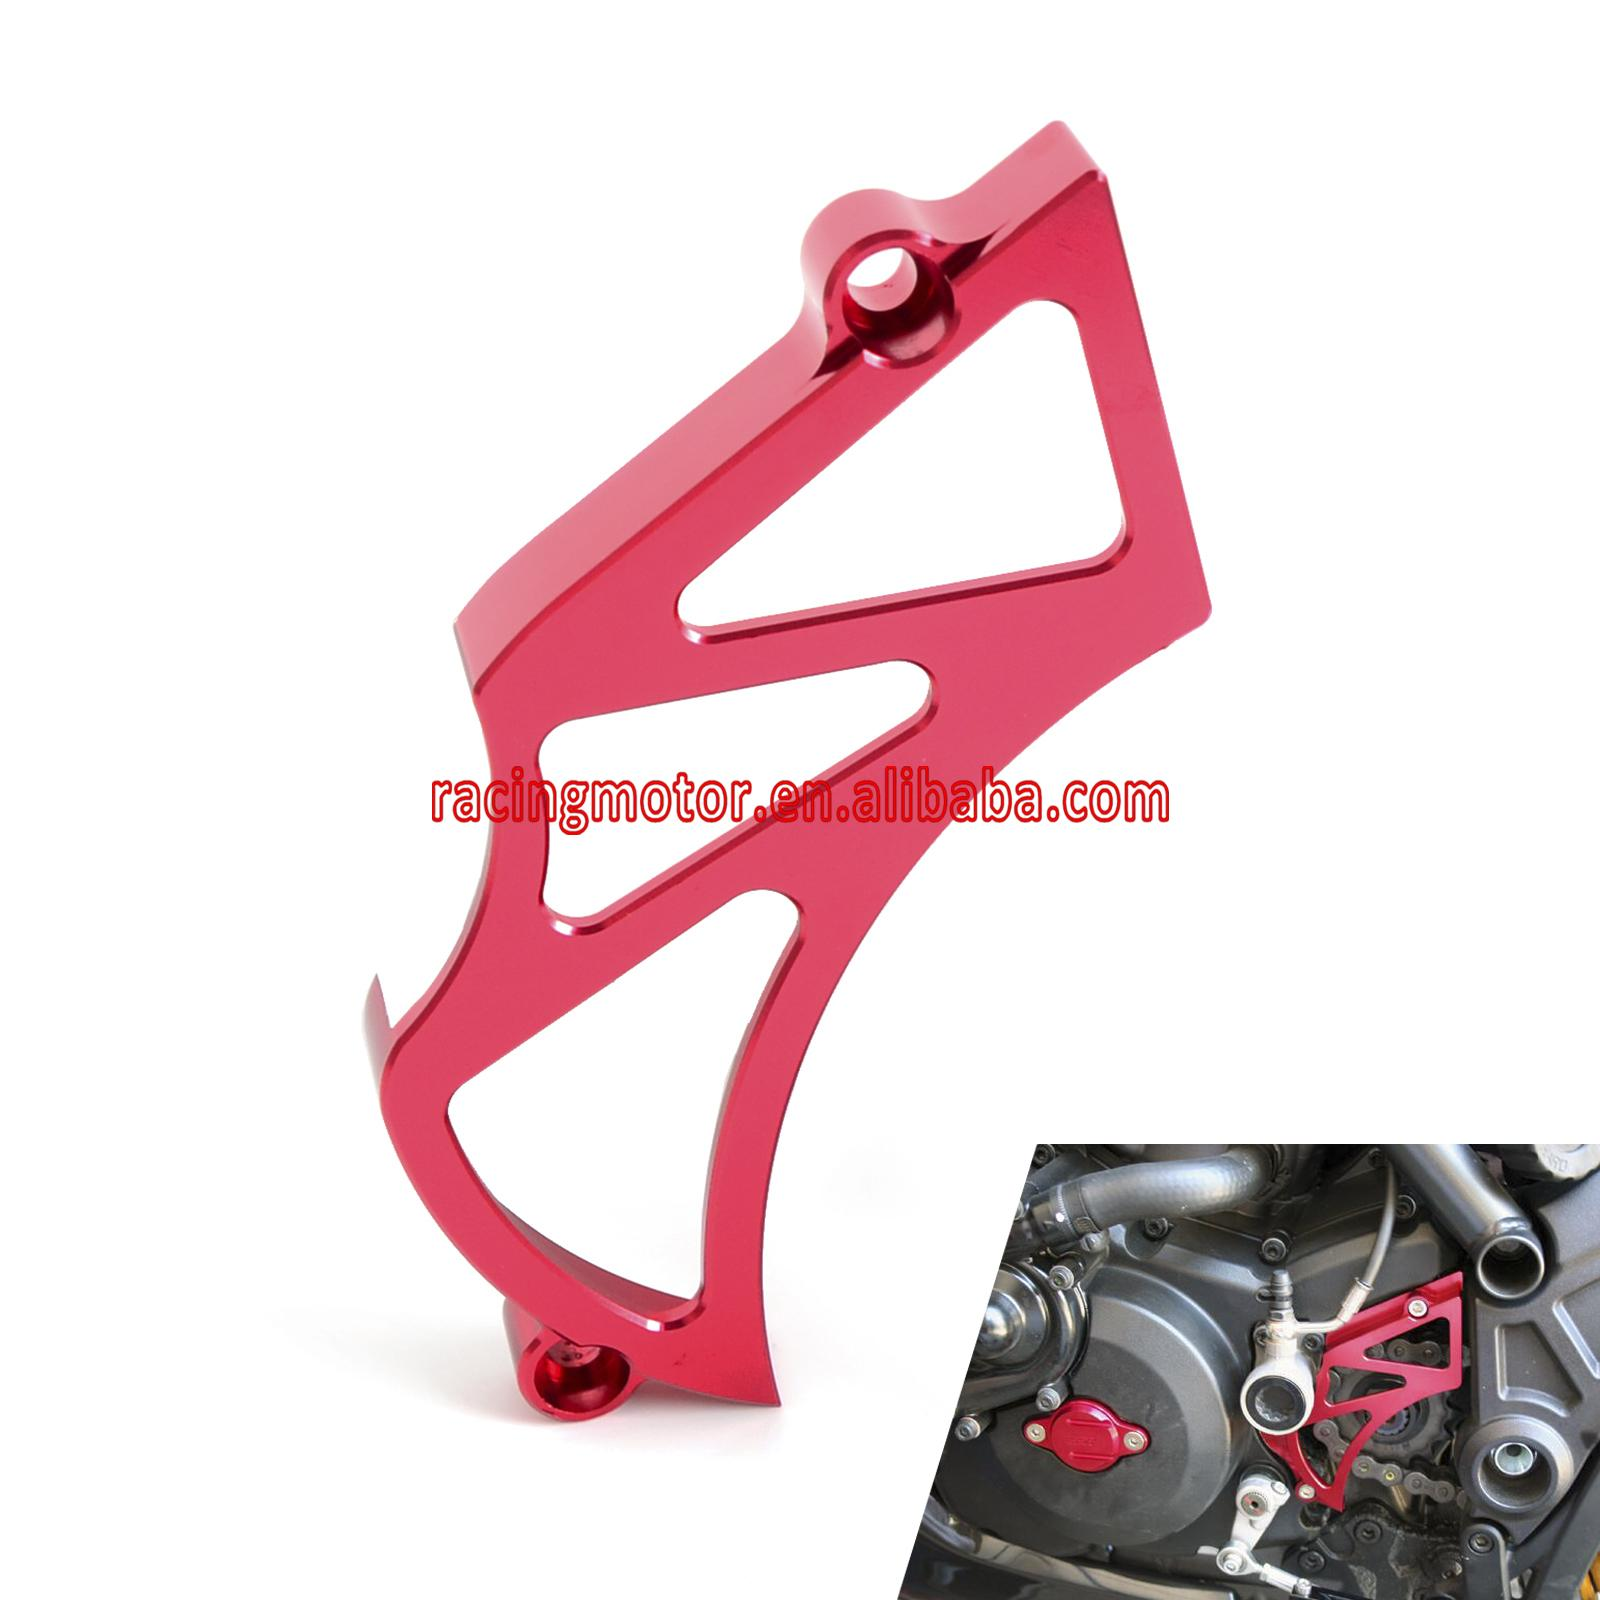 Billet Front Sprocket Cover Chain Guard Cover for Ducati Diavel Carbon 2011 2016 Diavel CROMO All Year 696/796/1100 All Series